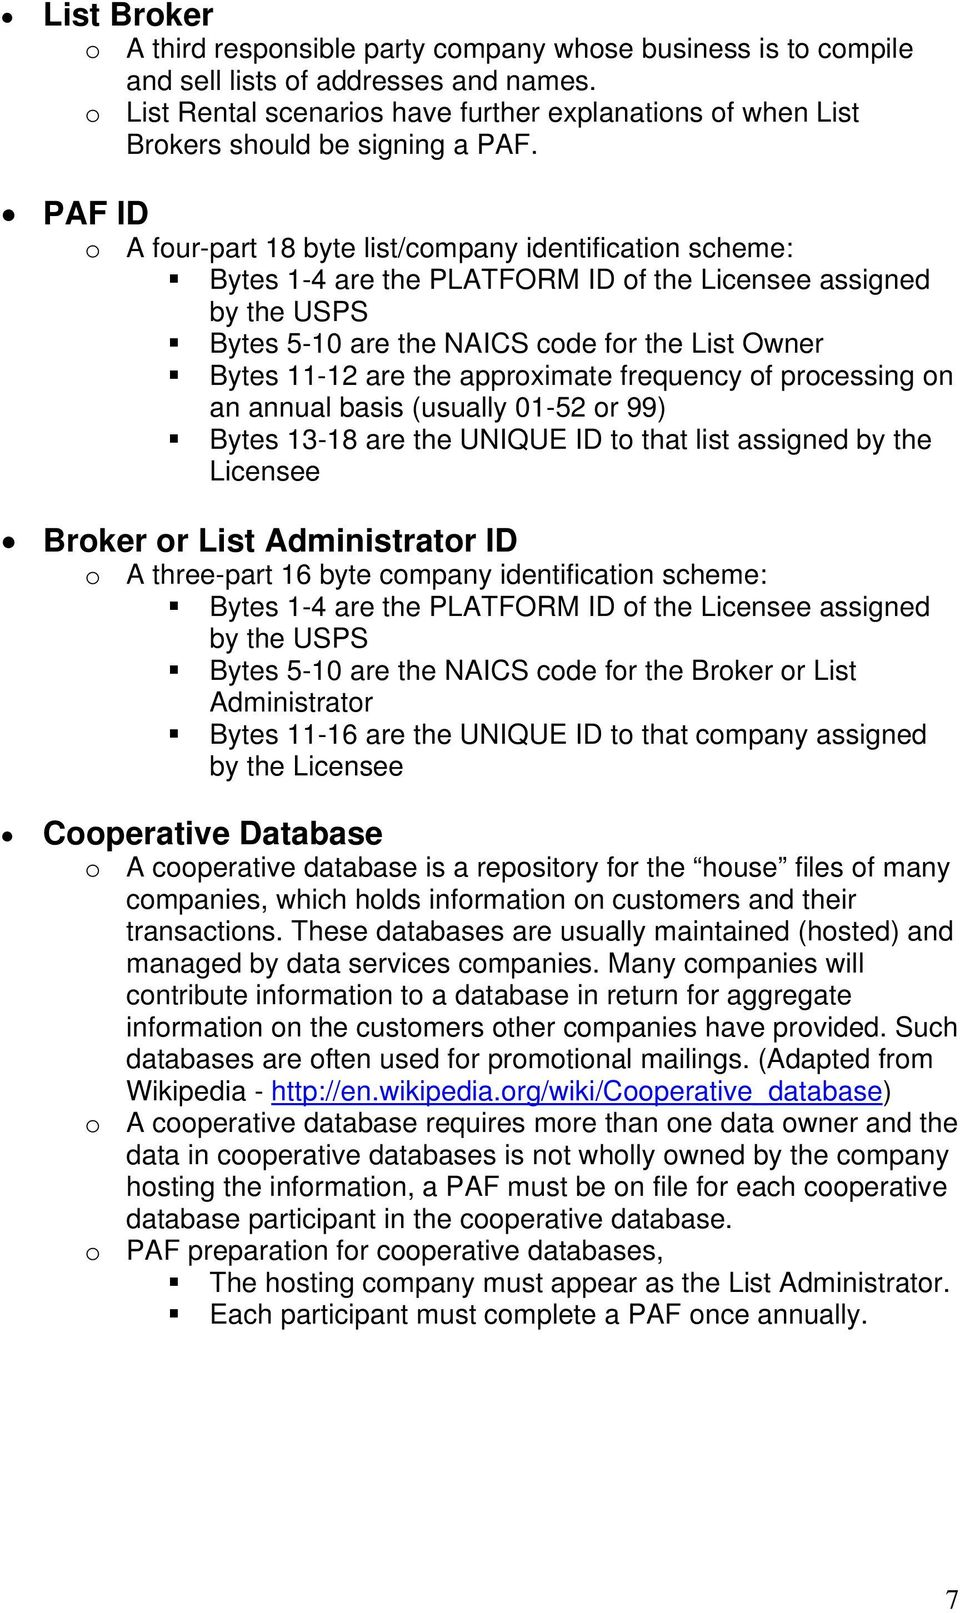 PAF ID o A four-part 18 byte list/company identification scheme: Bytes 1-4 are the PLATFORM ID of the Licensee assigned by the USPS Bytes 5-10 are the NAICS code for the List Owner Bytes 11-12 are